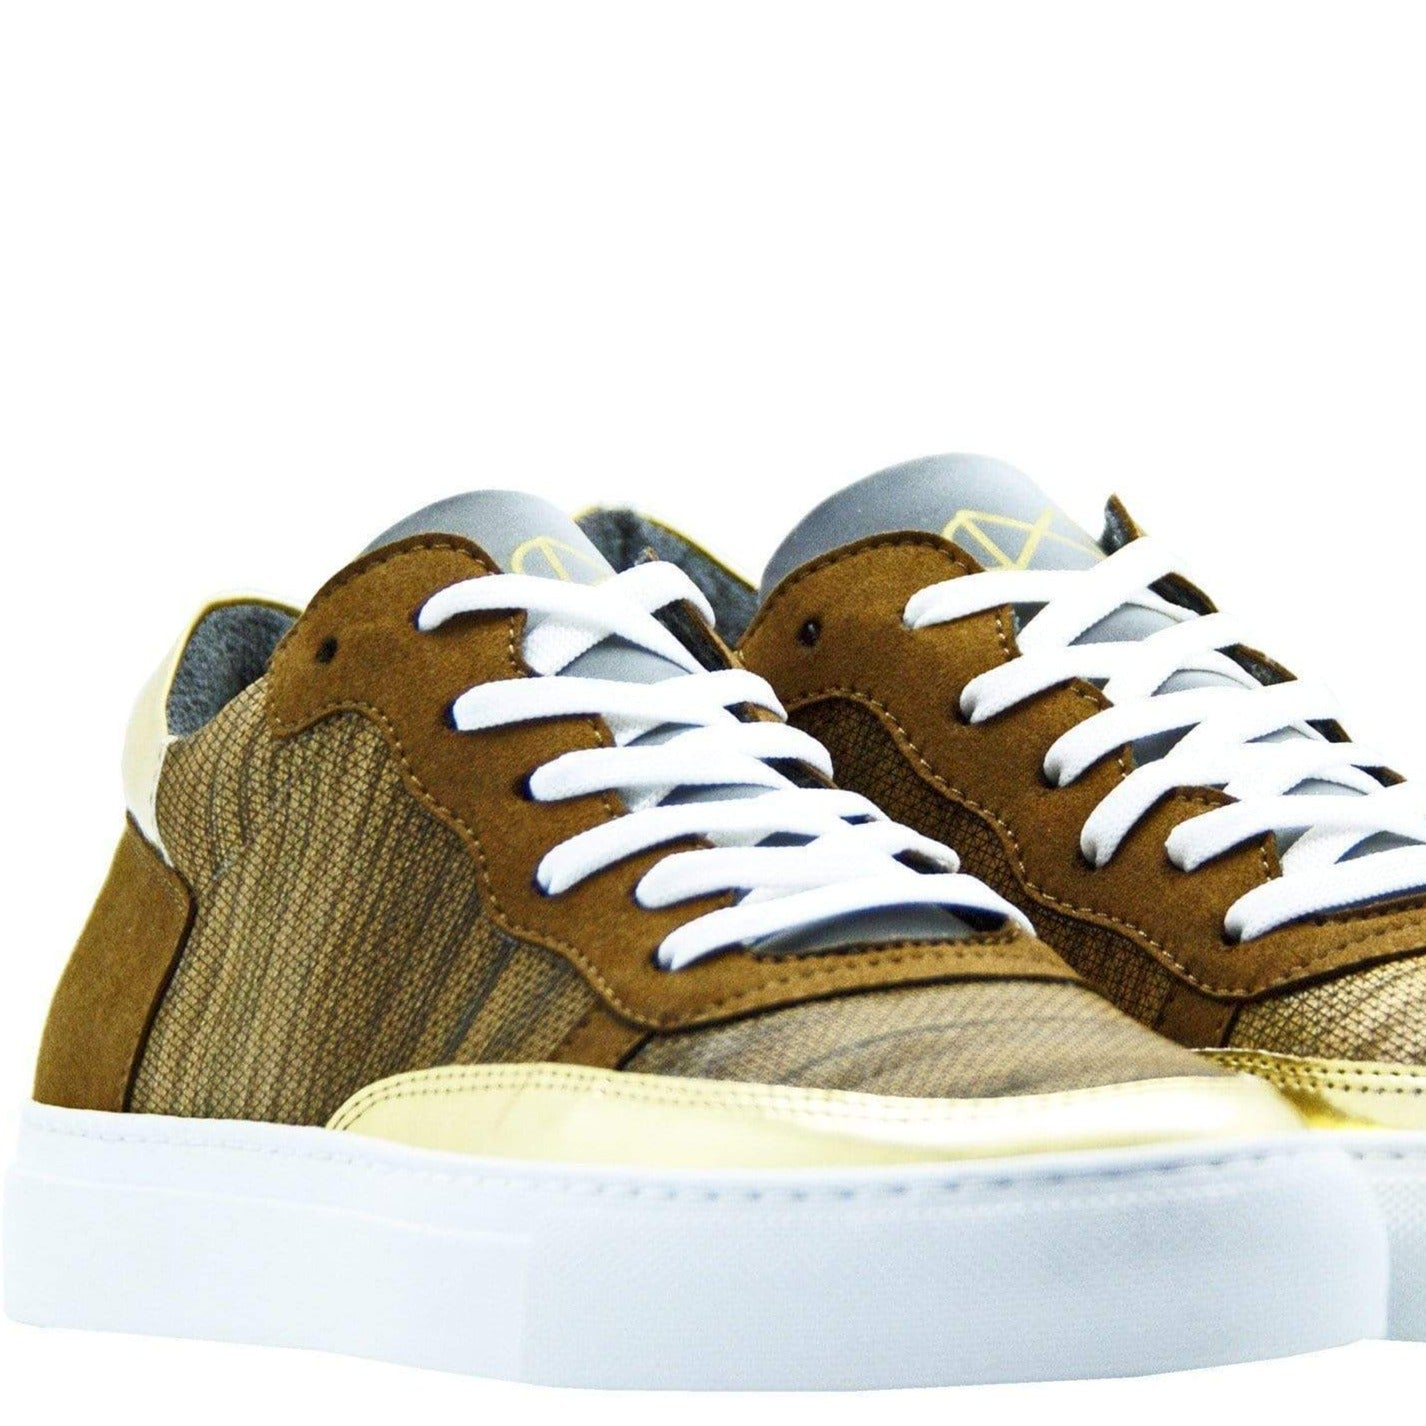 Wood Sneakers in Real Wood, Reflective Glass and Mircofiber from Recycled PET.